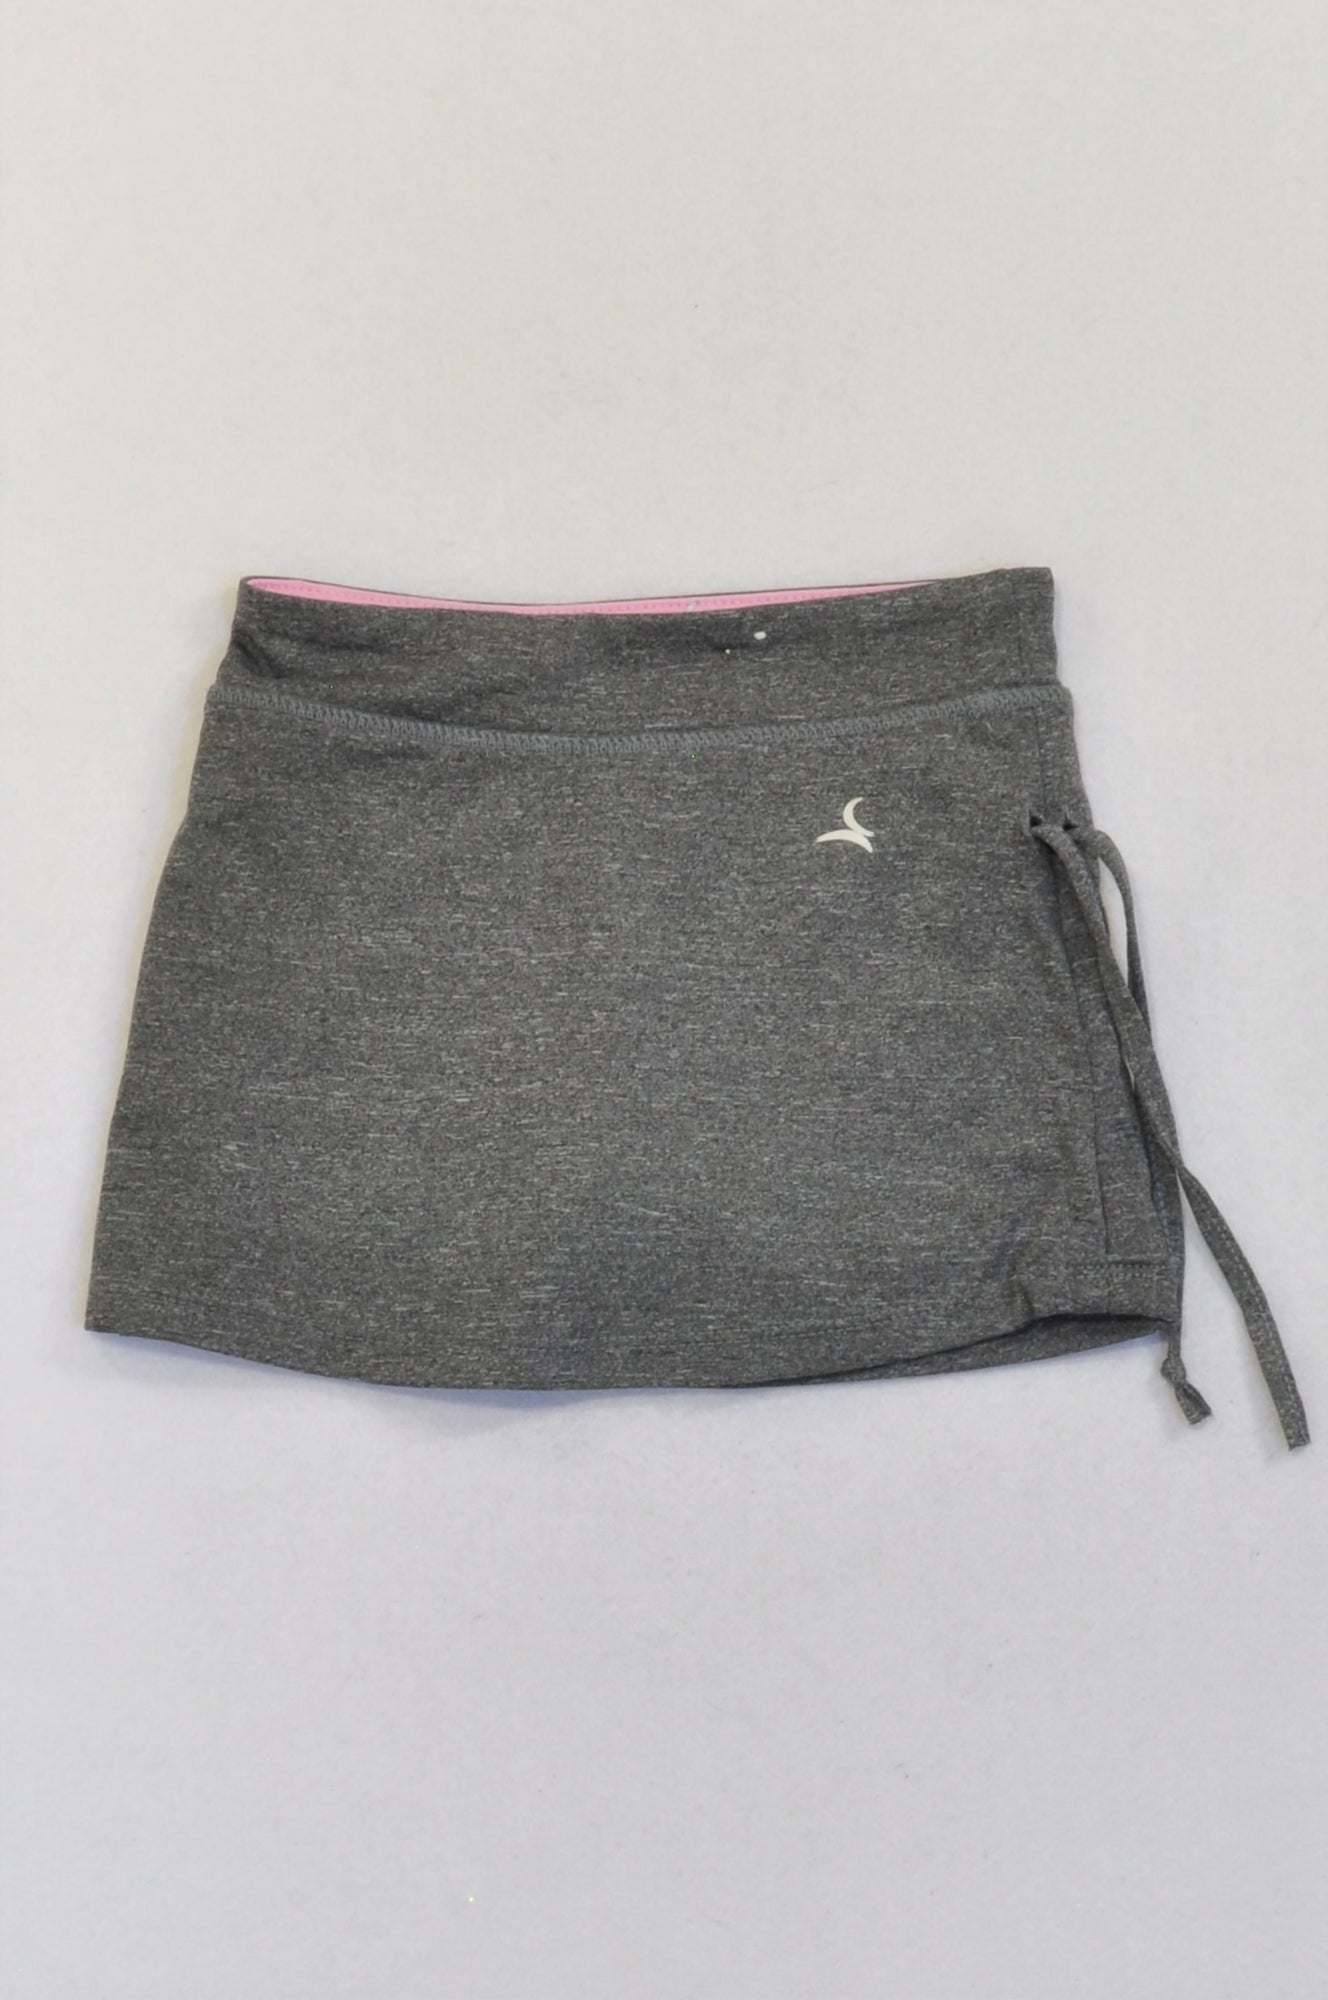 Pick 'n Pay Heathered Grey Pink Trim Lined Sport Skirt Girls 5-6 years